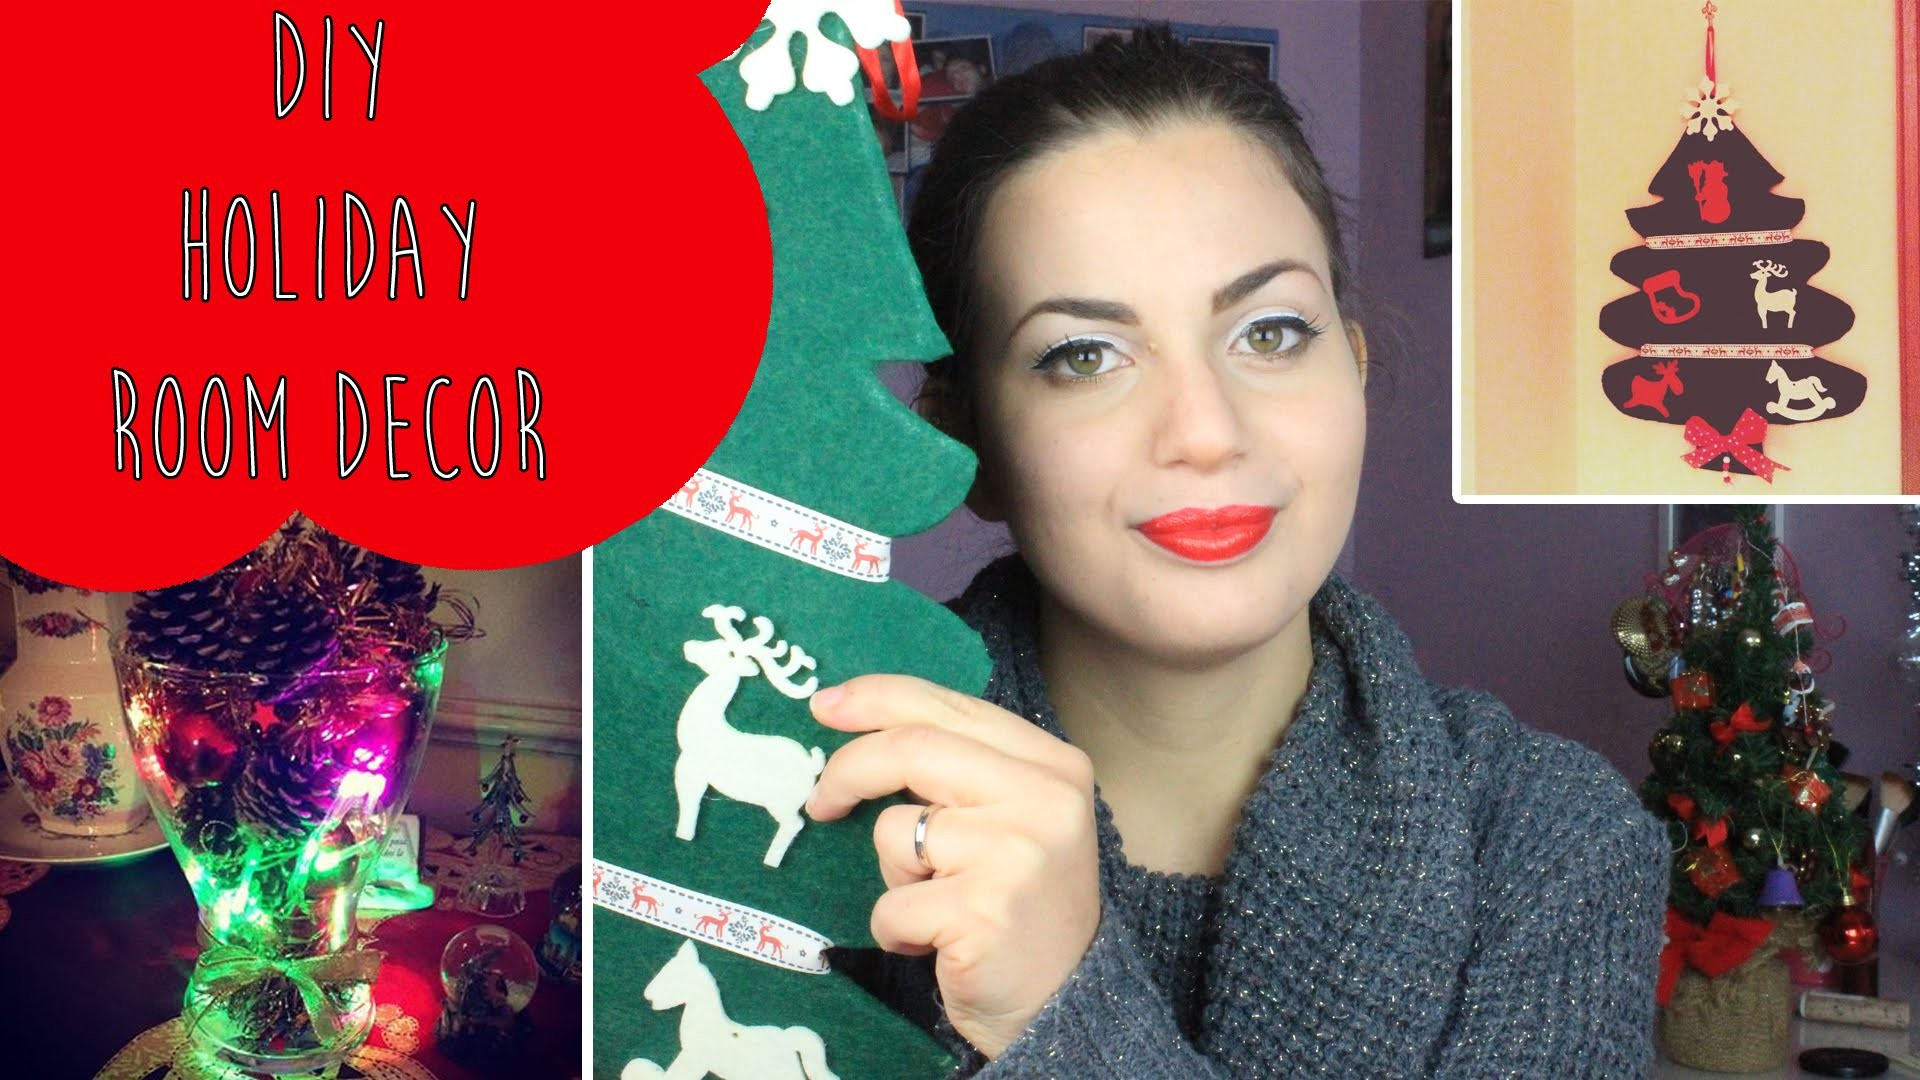 DIY Holiday Room Decor ♡ Decorazioni natalizie fai da te